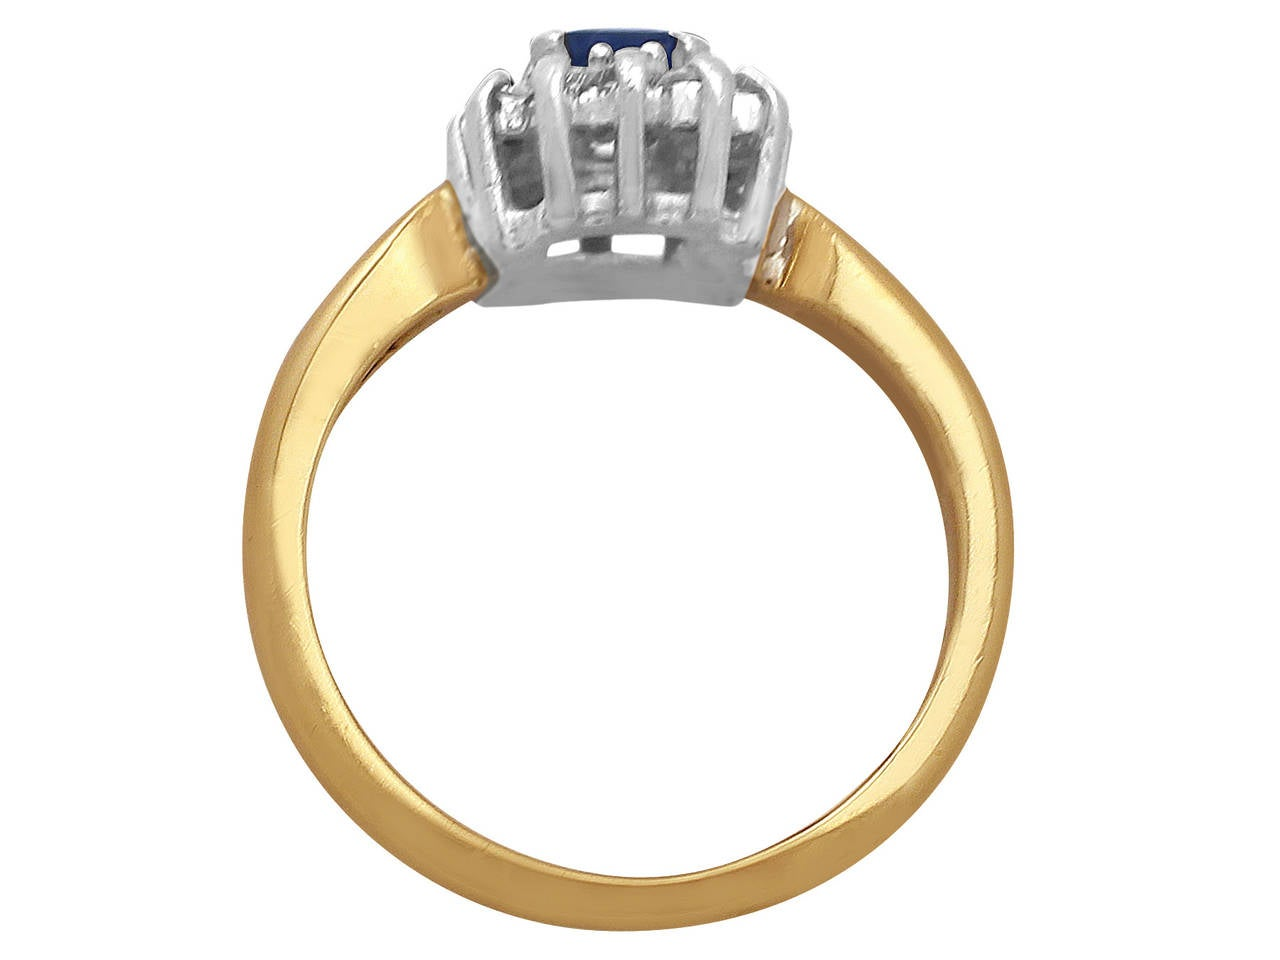 0.48Ct Sapphire & 0.35Ct Diamond, 18k Yellow Gold Cluster Ring - Vintage 5